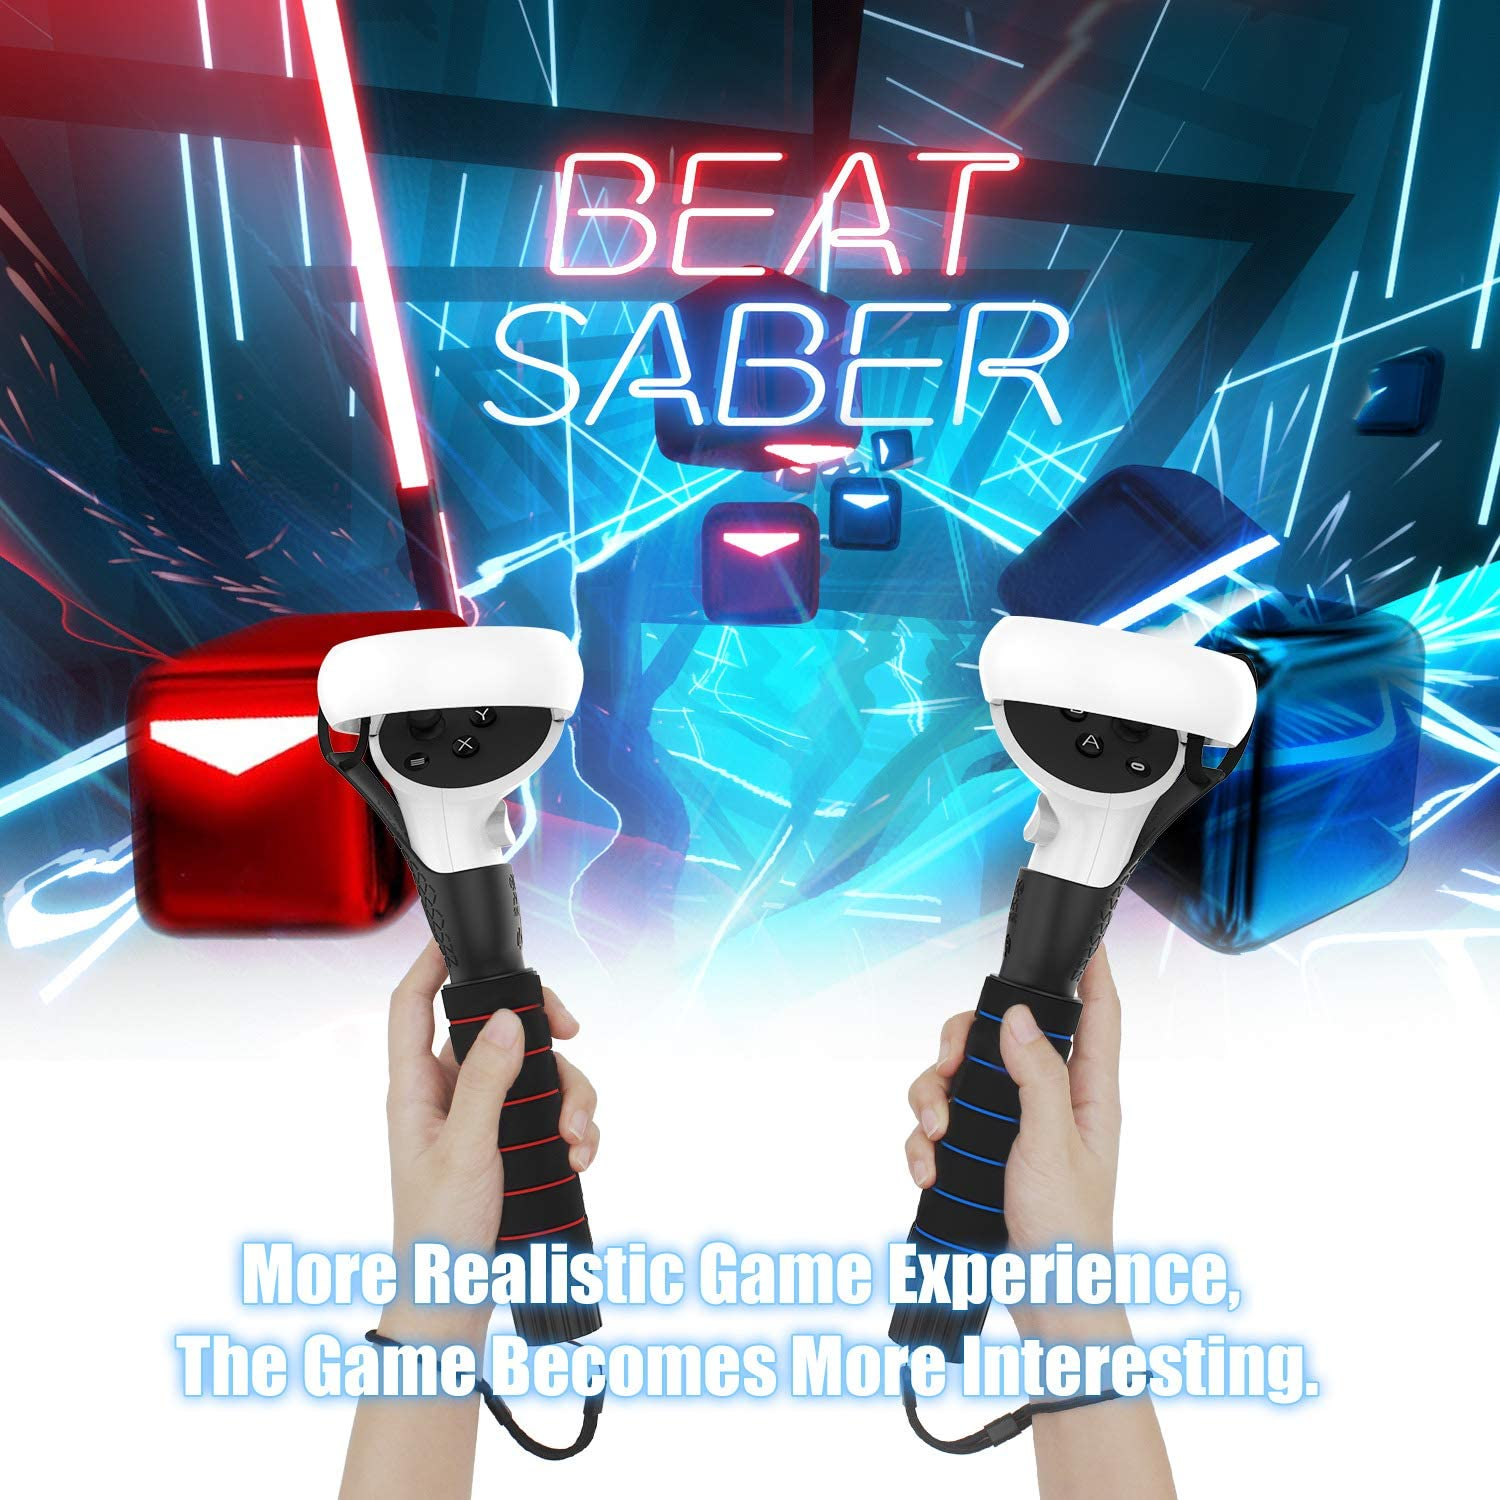 DOOPUU VR Oculus Quest 2 Accessories,Dual Handles Extension Grips for Oculus Quest, Quest 2 Or Rift S Controllers Playing Beat Saber Games, Sturdy,Comfortable to Grip